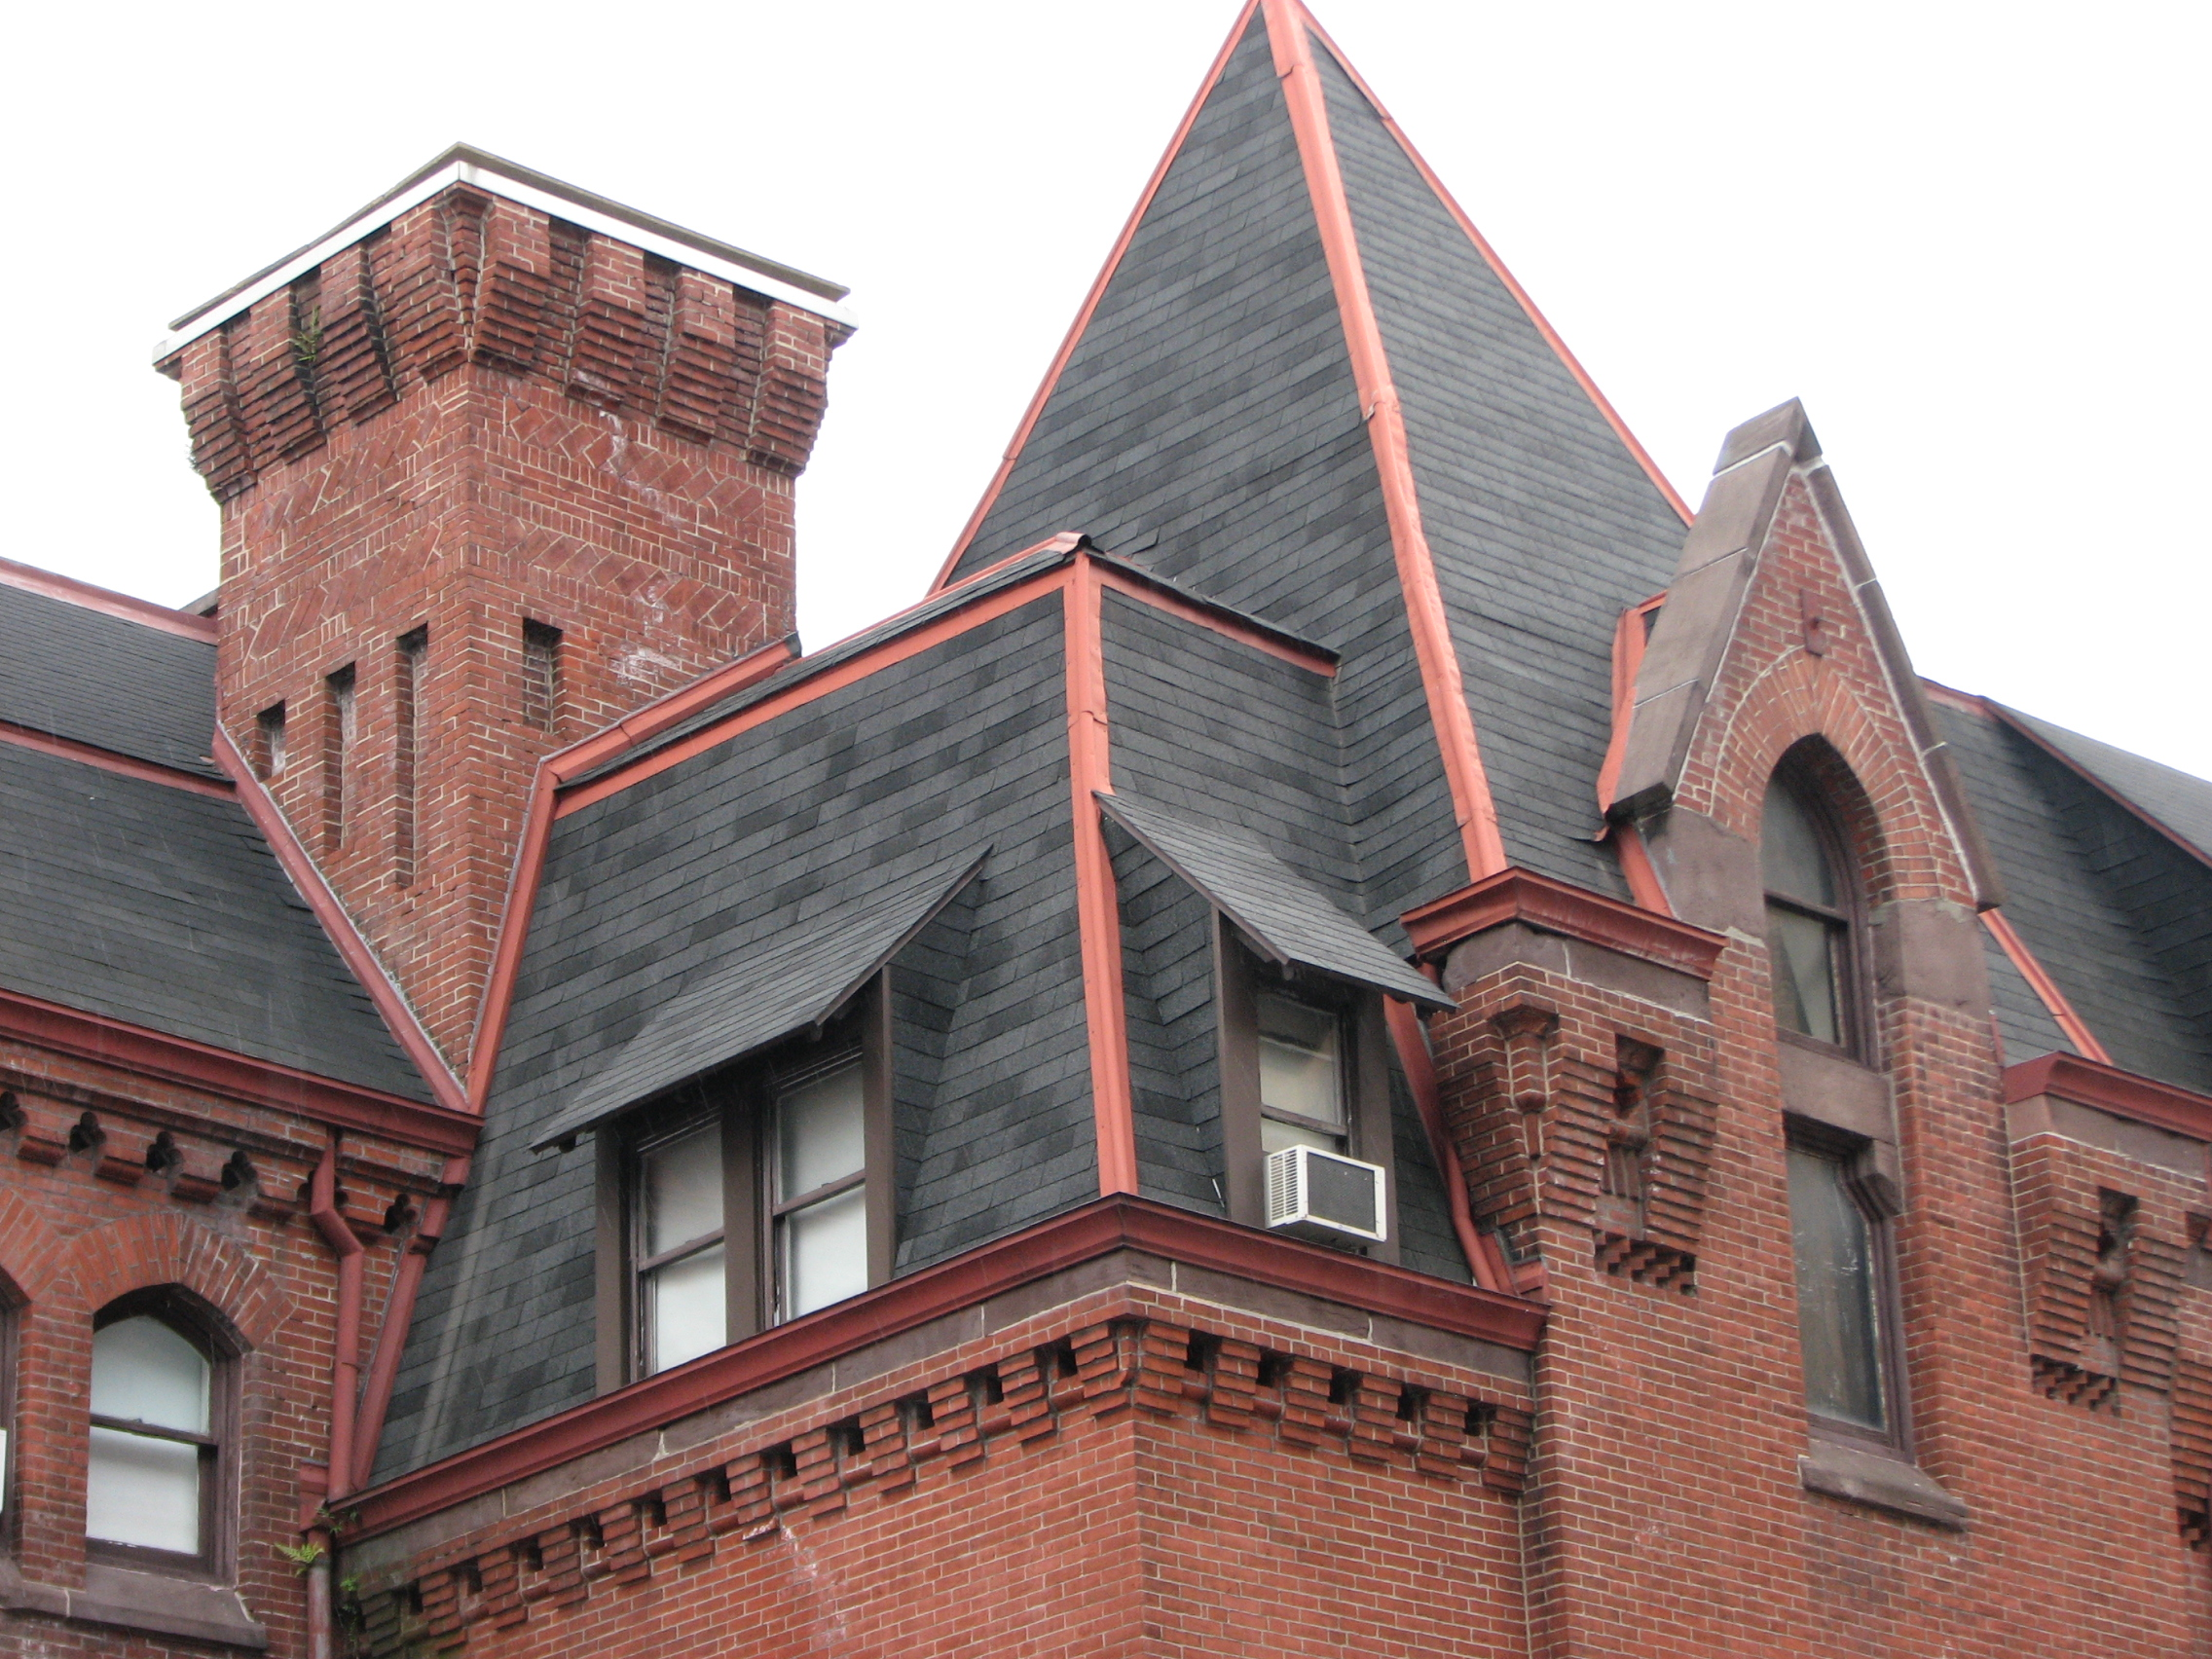 Pitched roofs, gables, dormers, and corbelled chimneys adorn the sections designed by Furness.